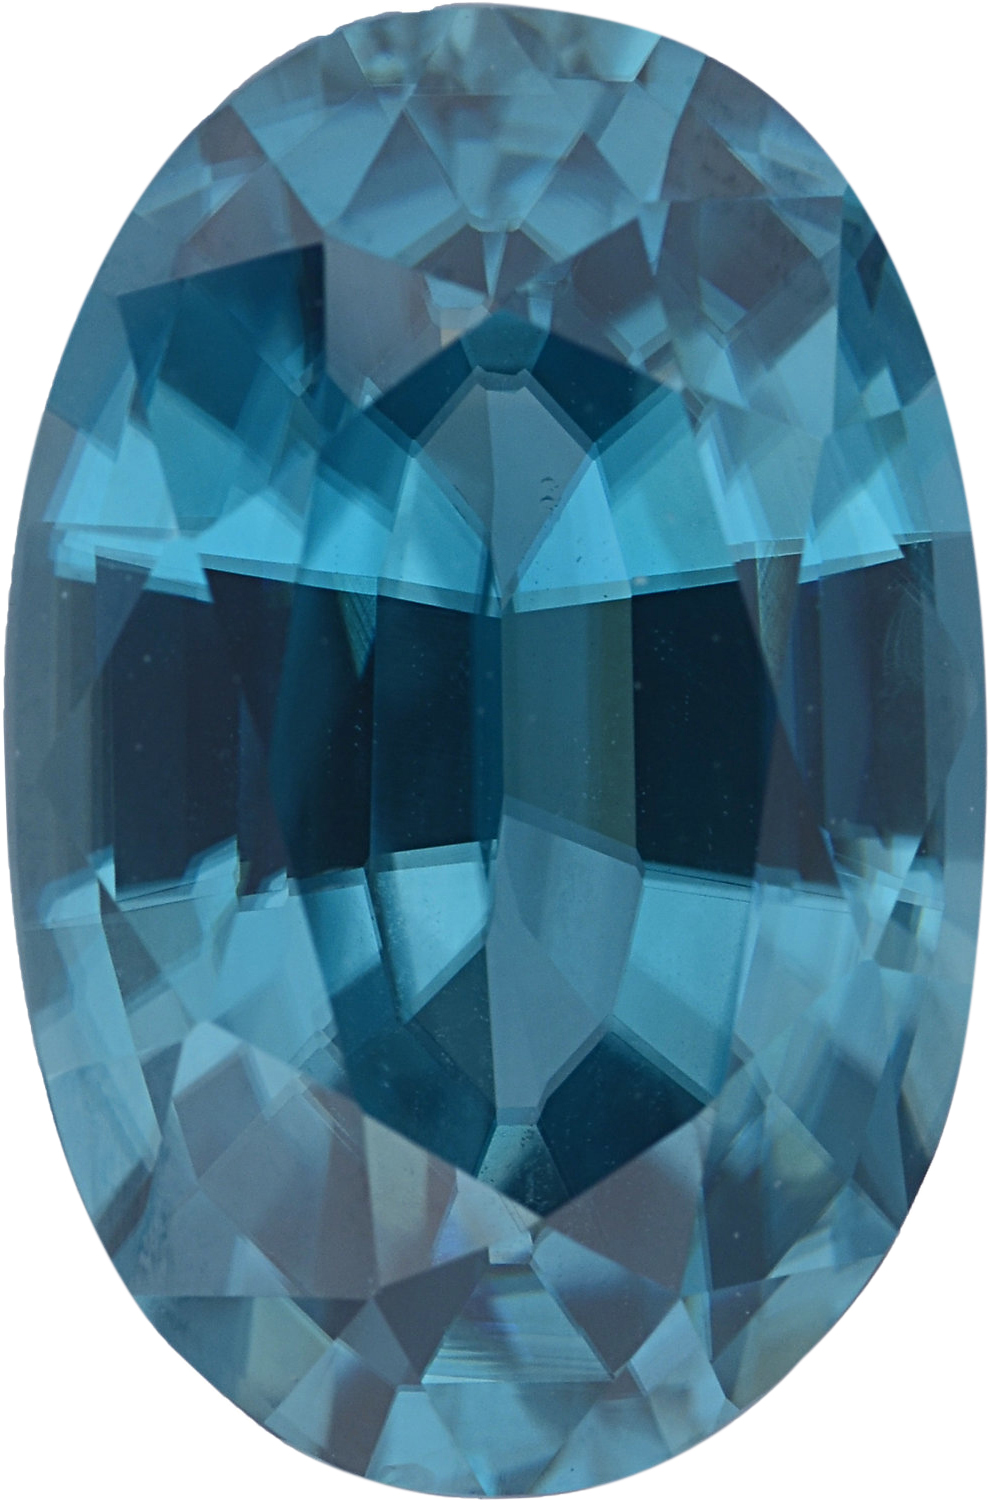 7.42 carats Oval Cut Genuine Zircon Gem, 13.07 x 9.05 mm